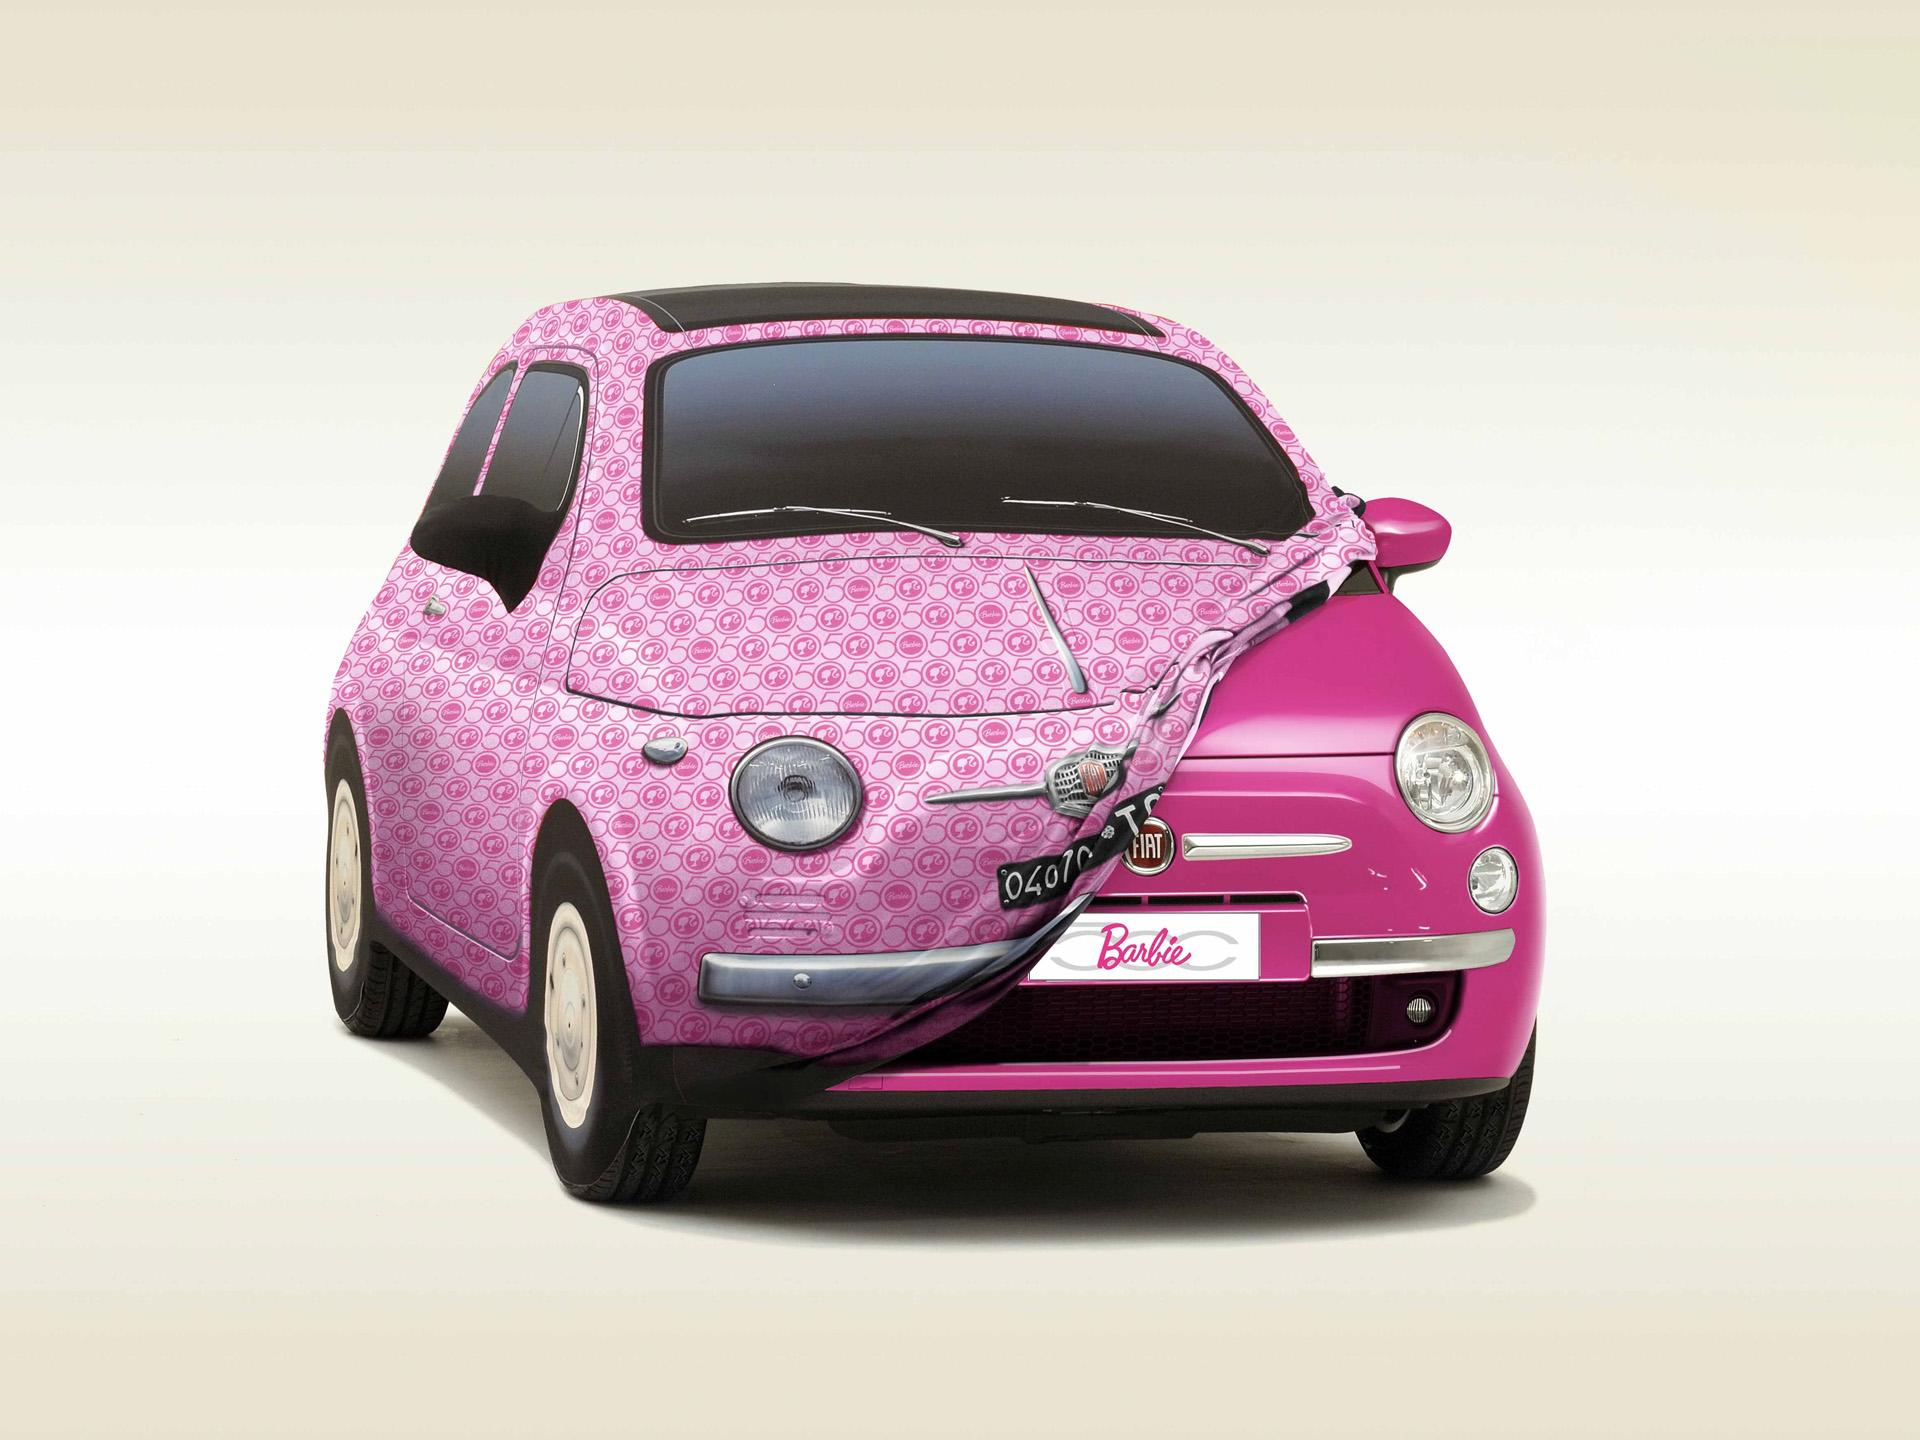 2009 Fiat 500 Barbie Edition News And Information